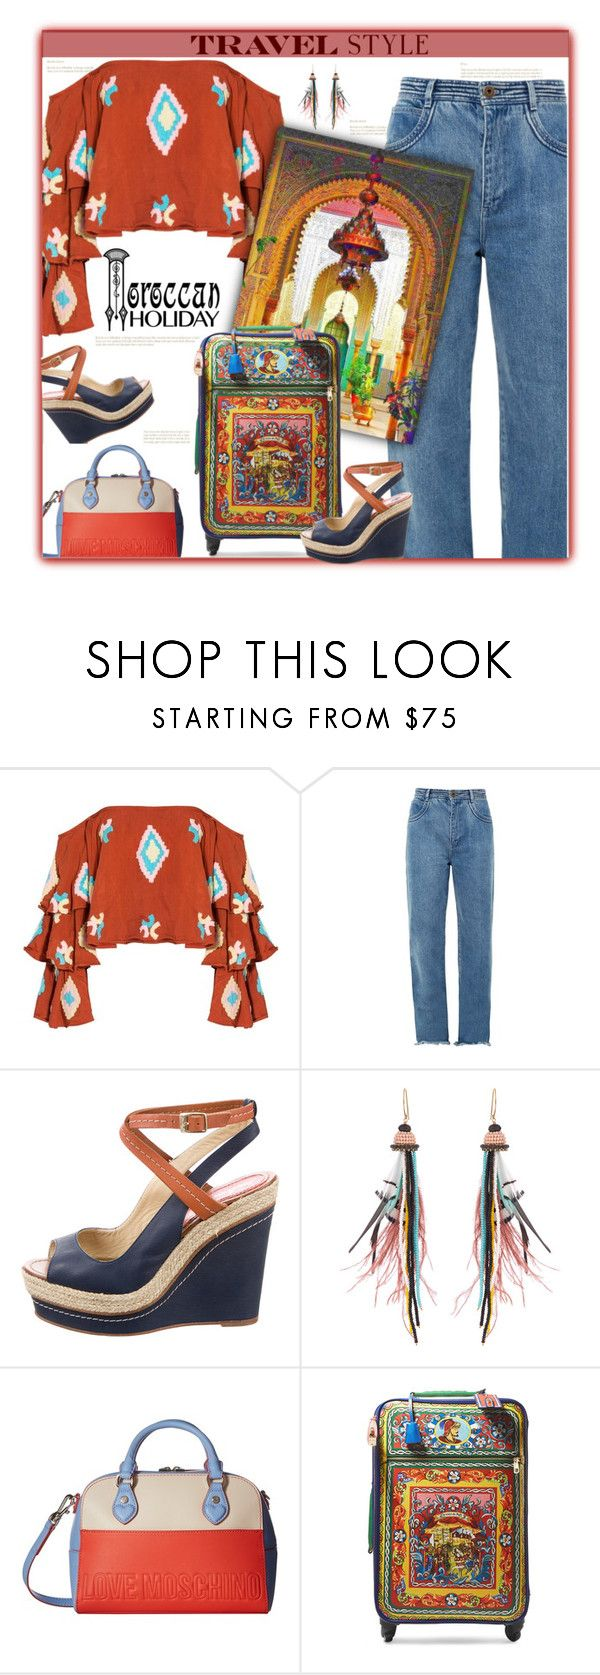 """""""Morocco Travel Style"""" by fassionista ❤ liked on Polyvore featuring Mochi, Chloé, Paloma Berceló, Etro, Love Moschino, Dolce&Gabbana, denim, jeans, Morocco and outfitsfortravel"""